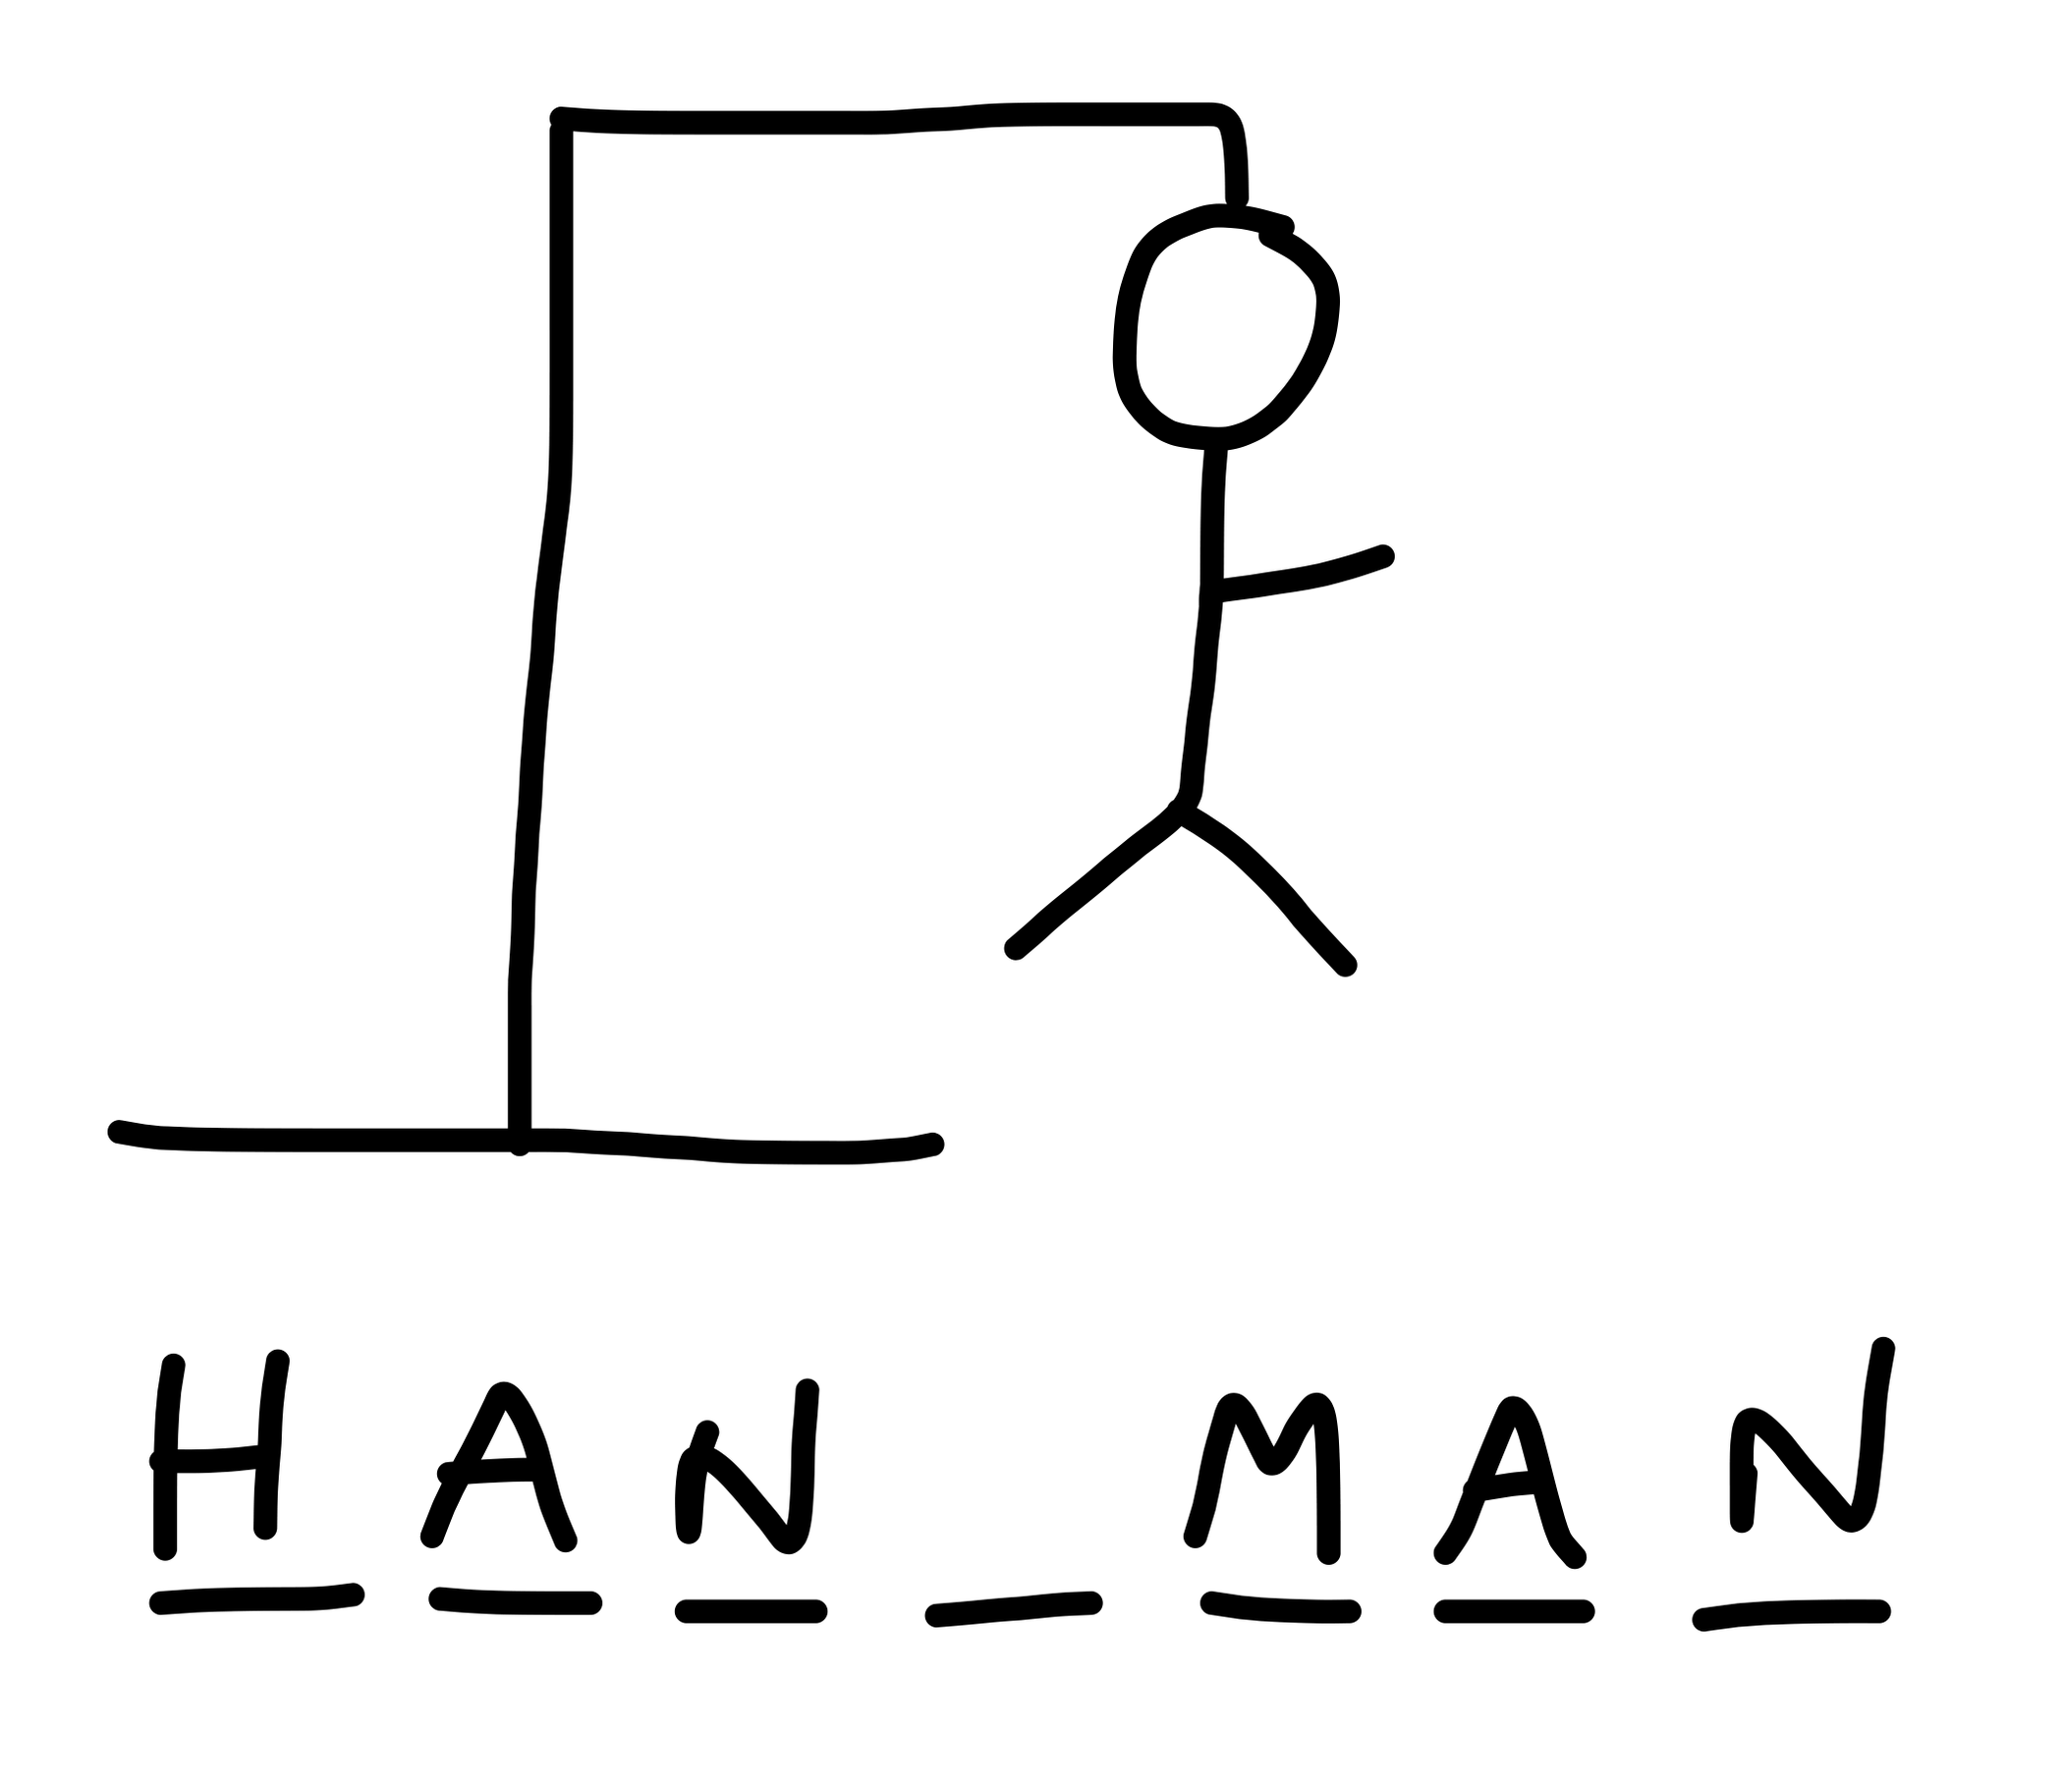 /problems/hangman/file/statement/en/img-0001.png